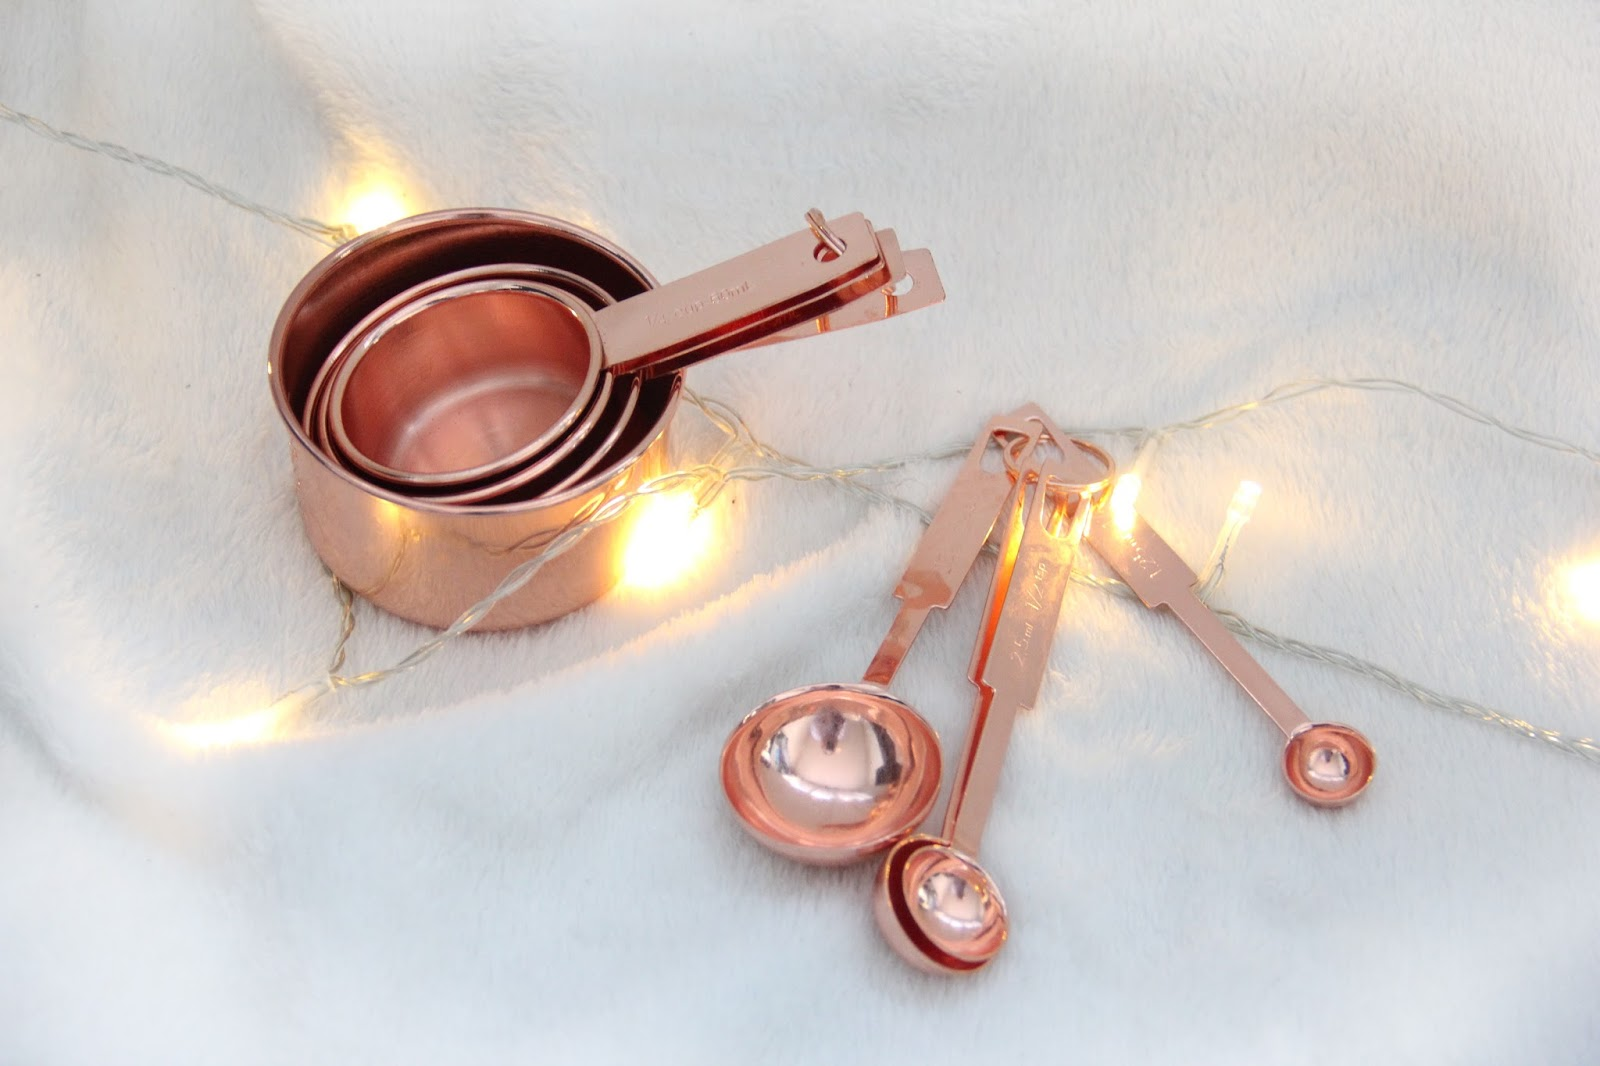 Copper Baking Utensils from Asda.